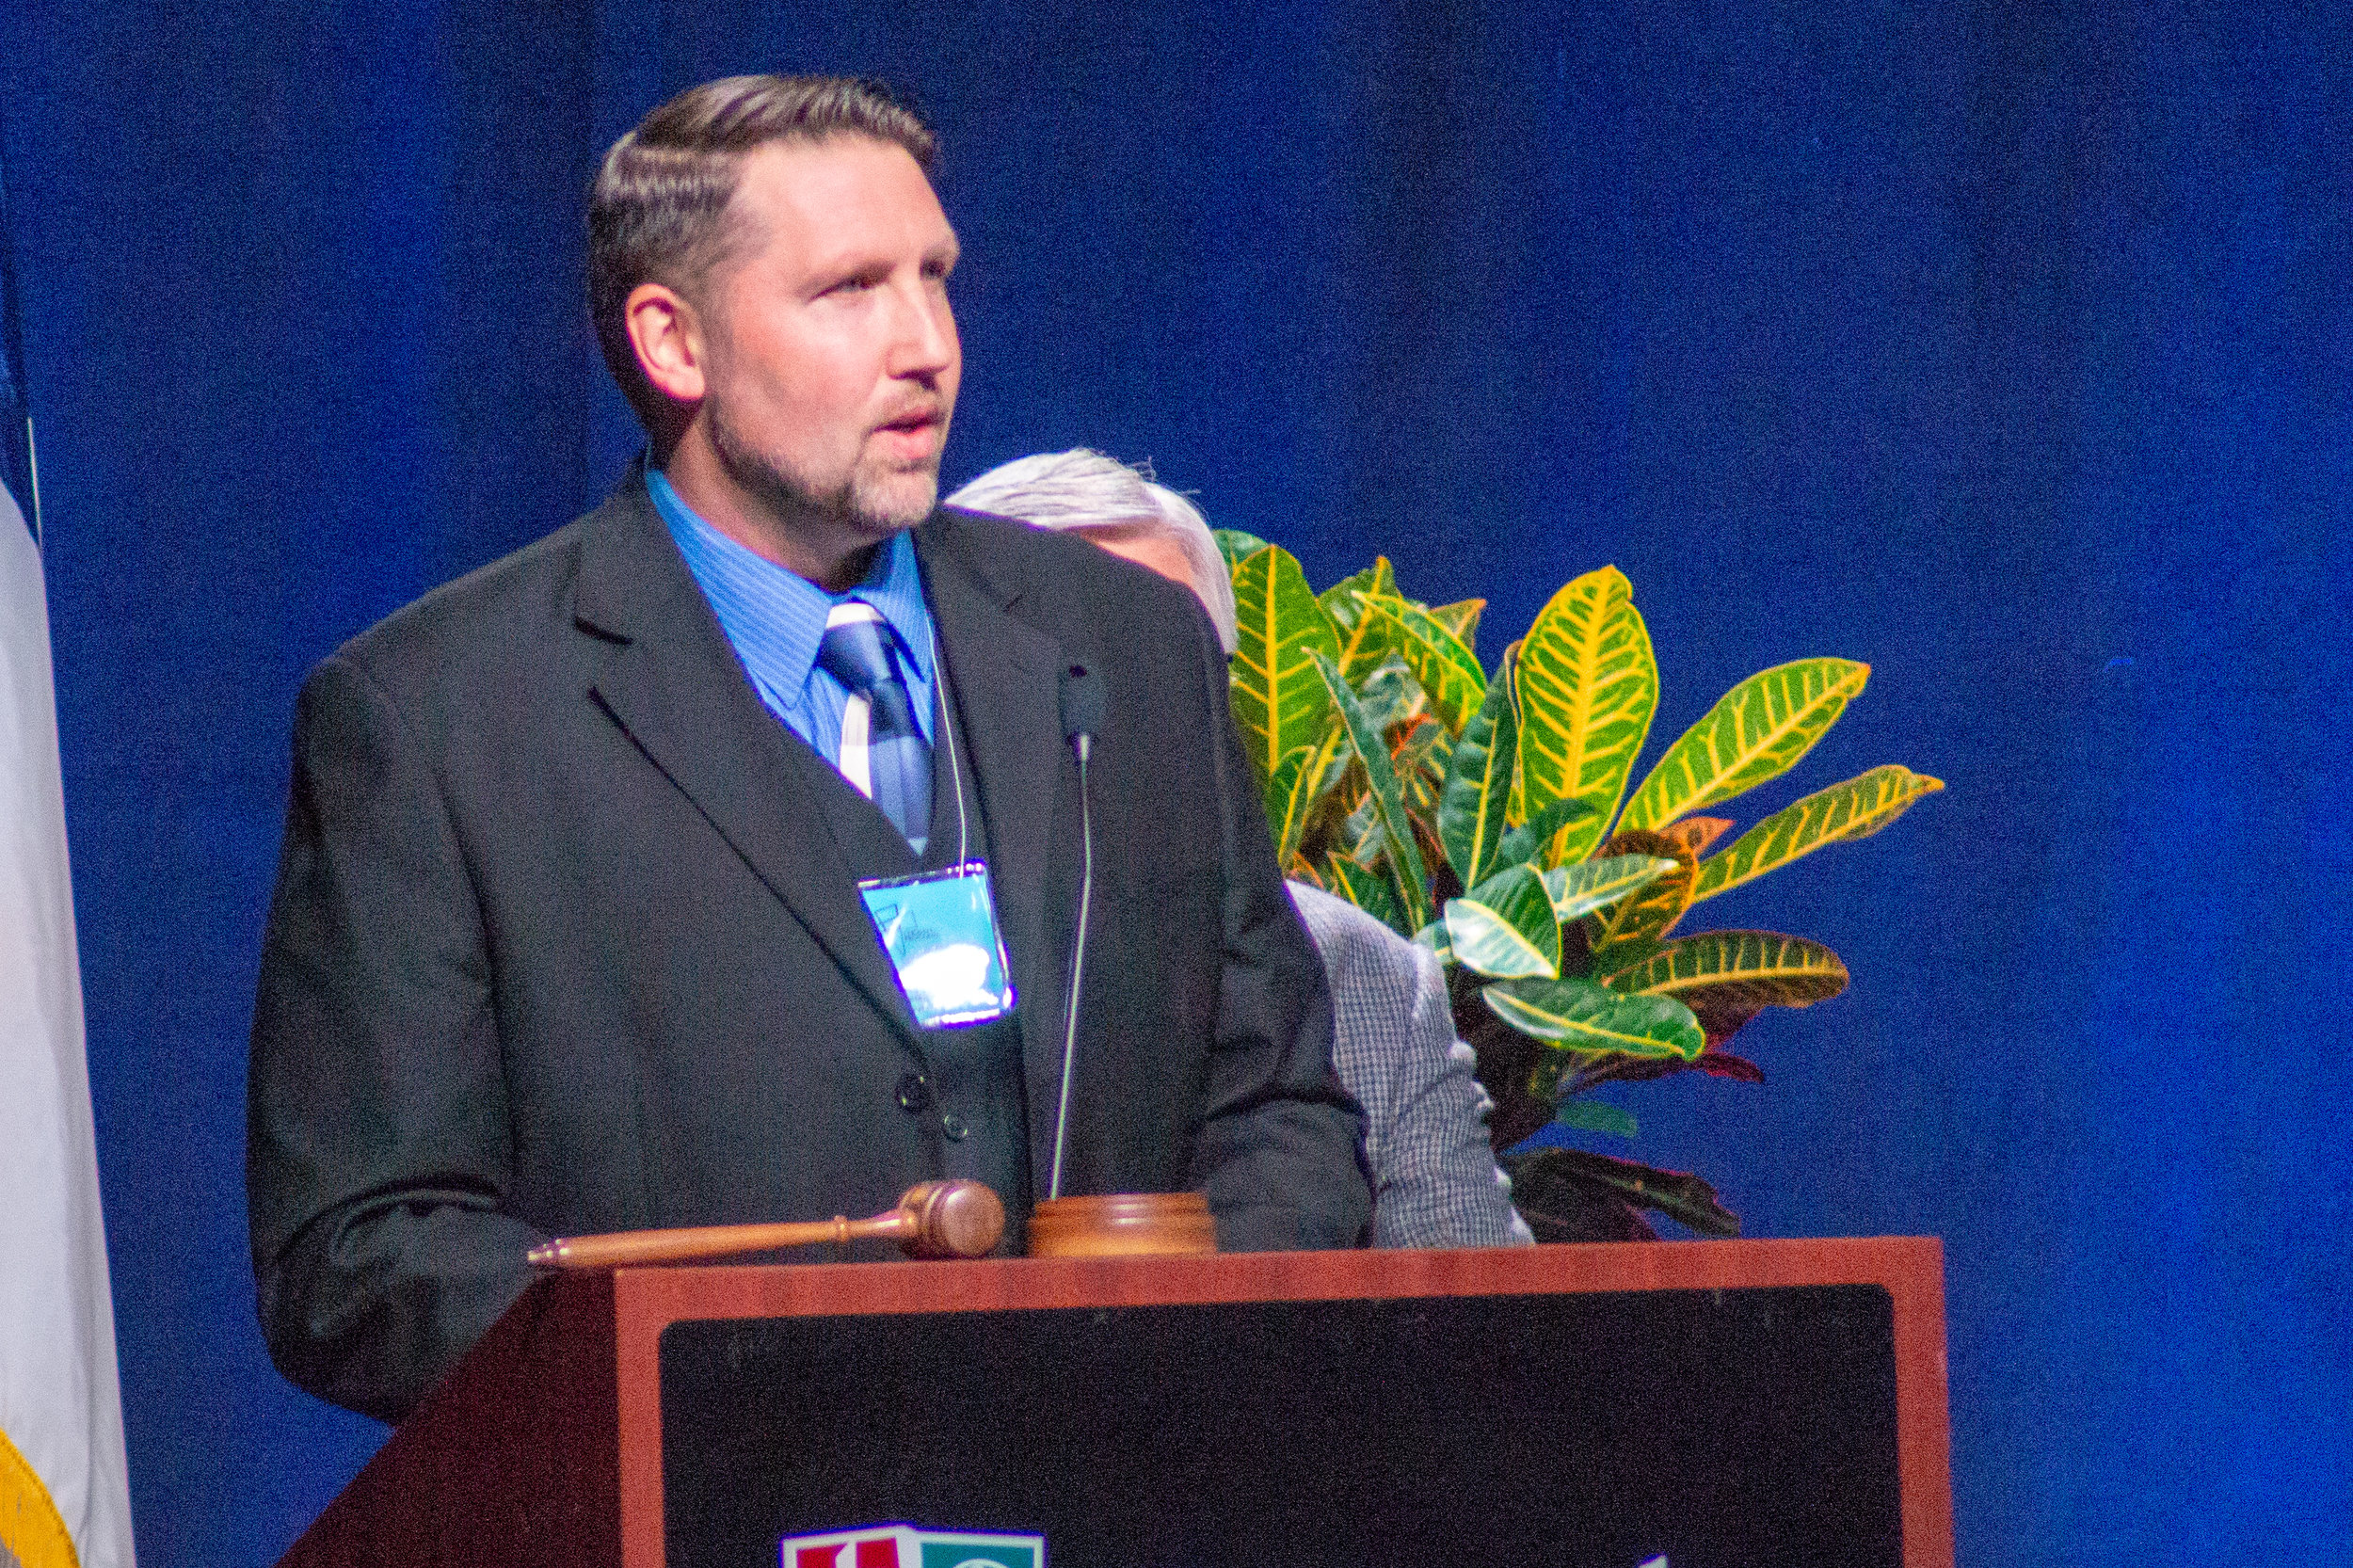 President-Elect Woodford addresses the convention shortly after his election on Thursday, June 21.